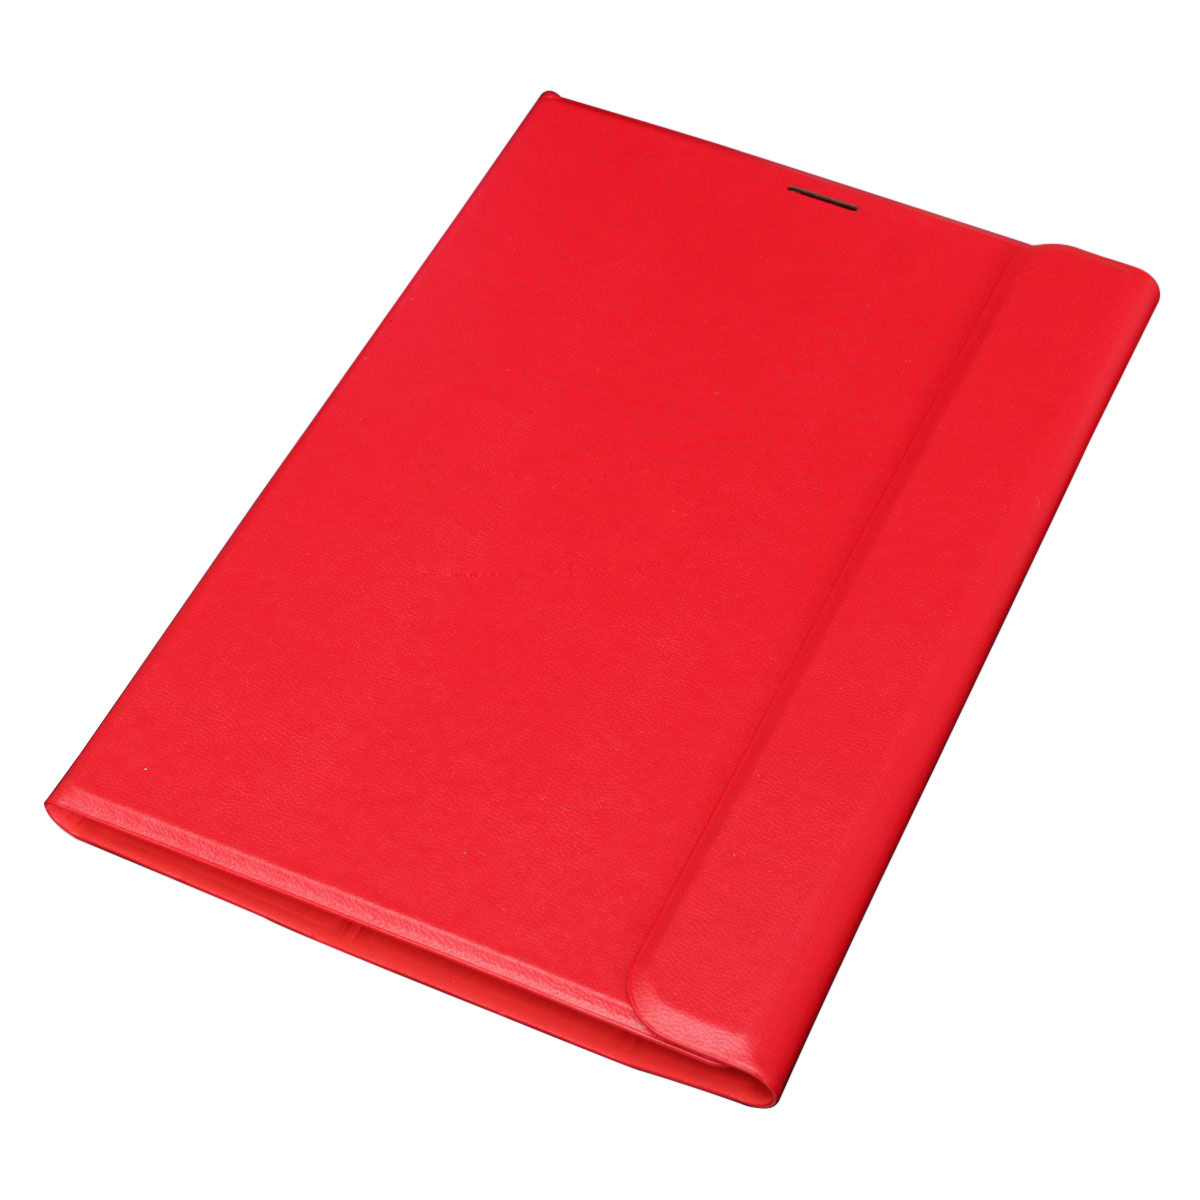 SMART SLIM COVER FOR SAMSUNG GALAXY TAB S2 9.7 SM-T815 T810 CASE TABLET Red